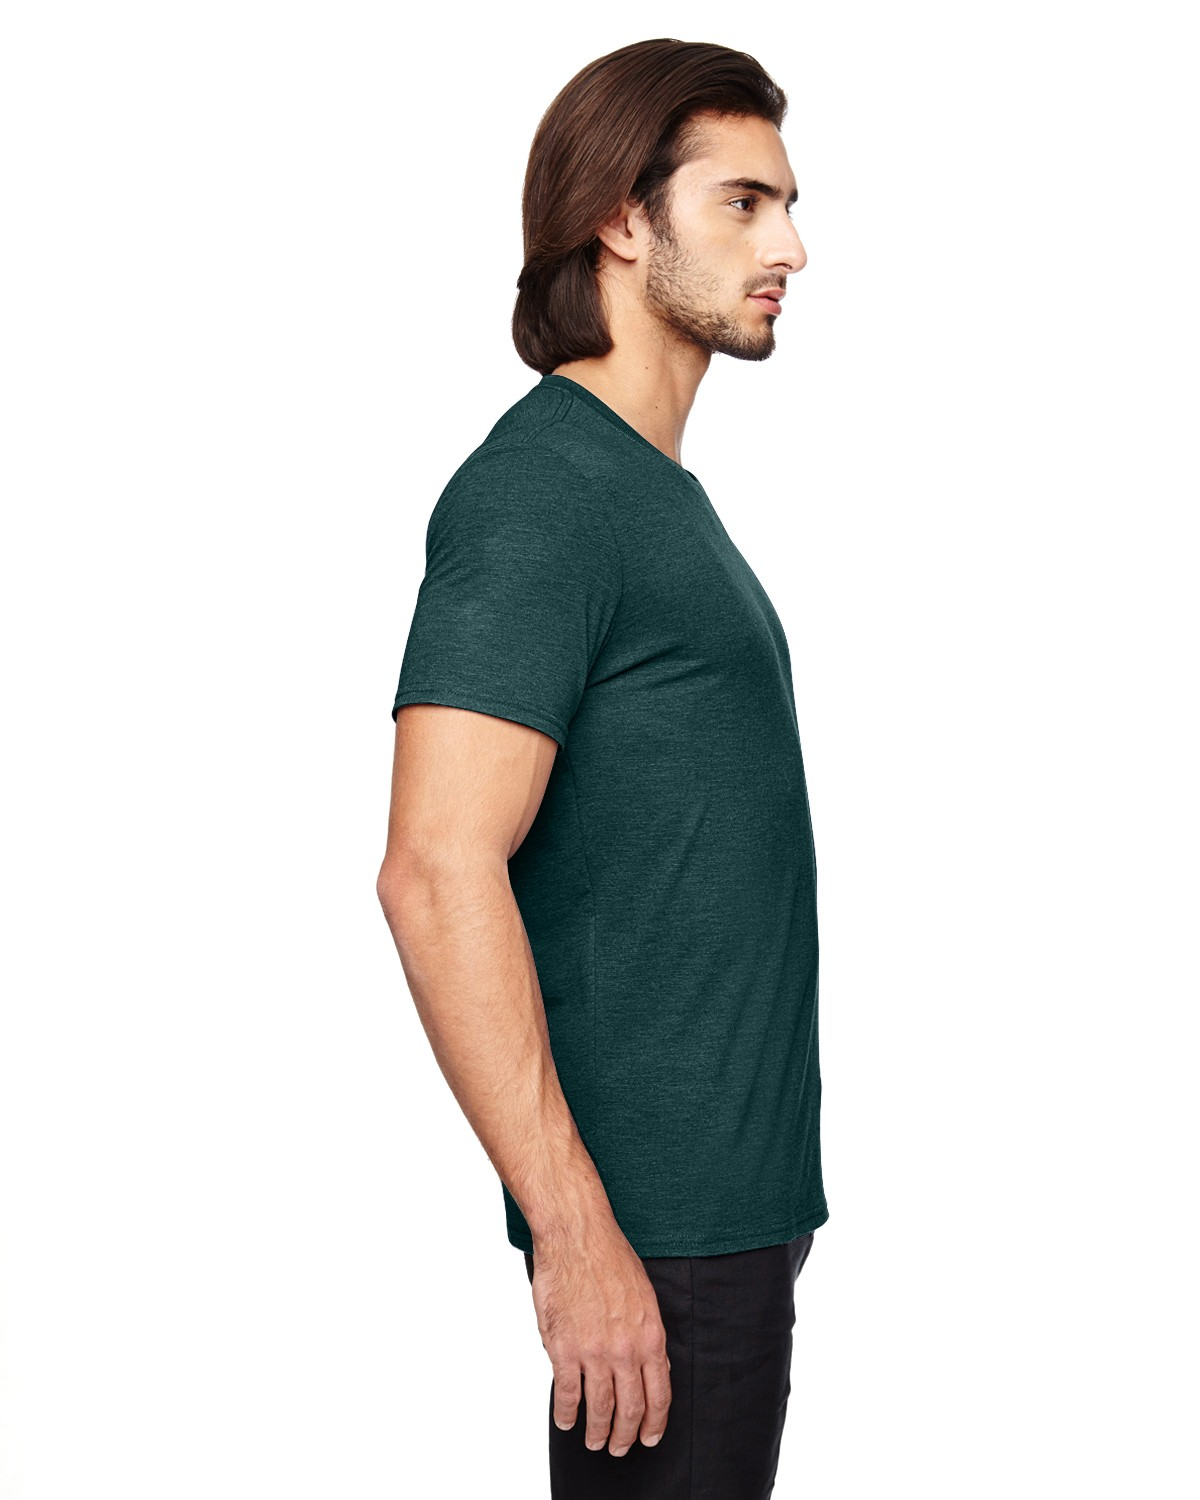 6750 Anvil HTH DARK GREEN